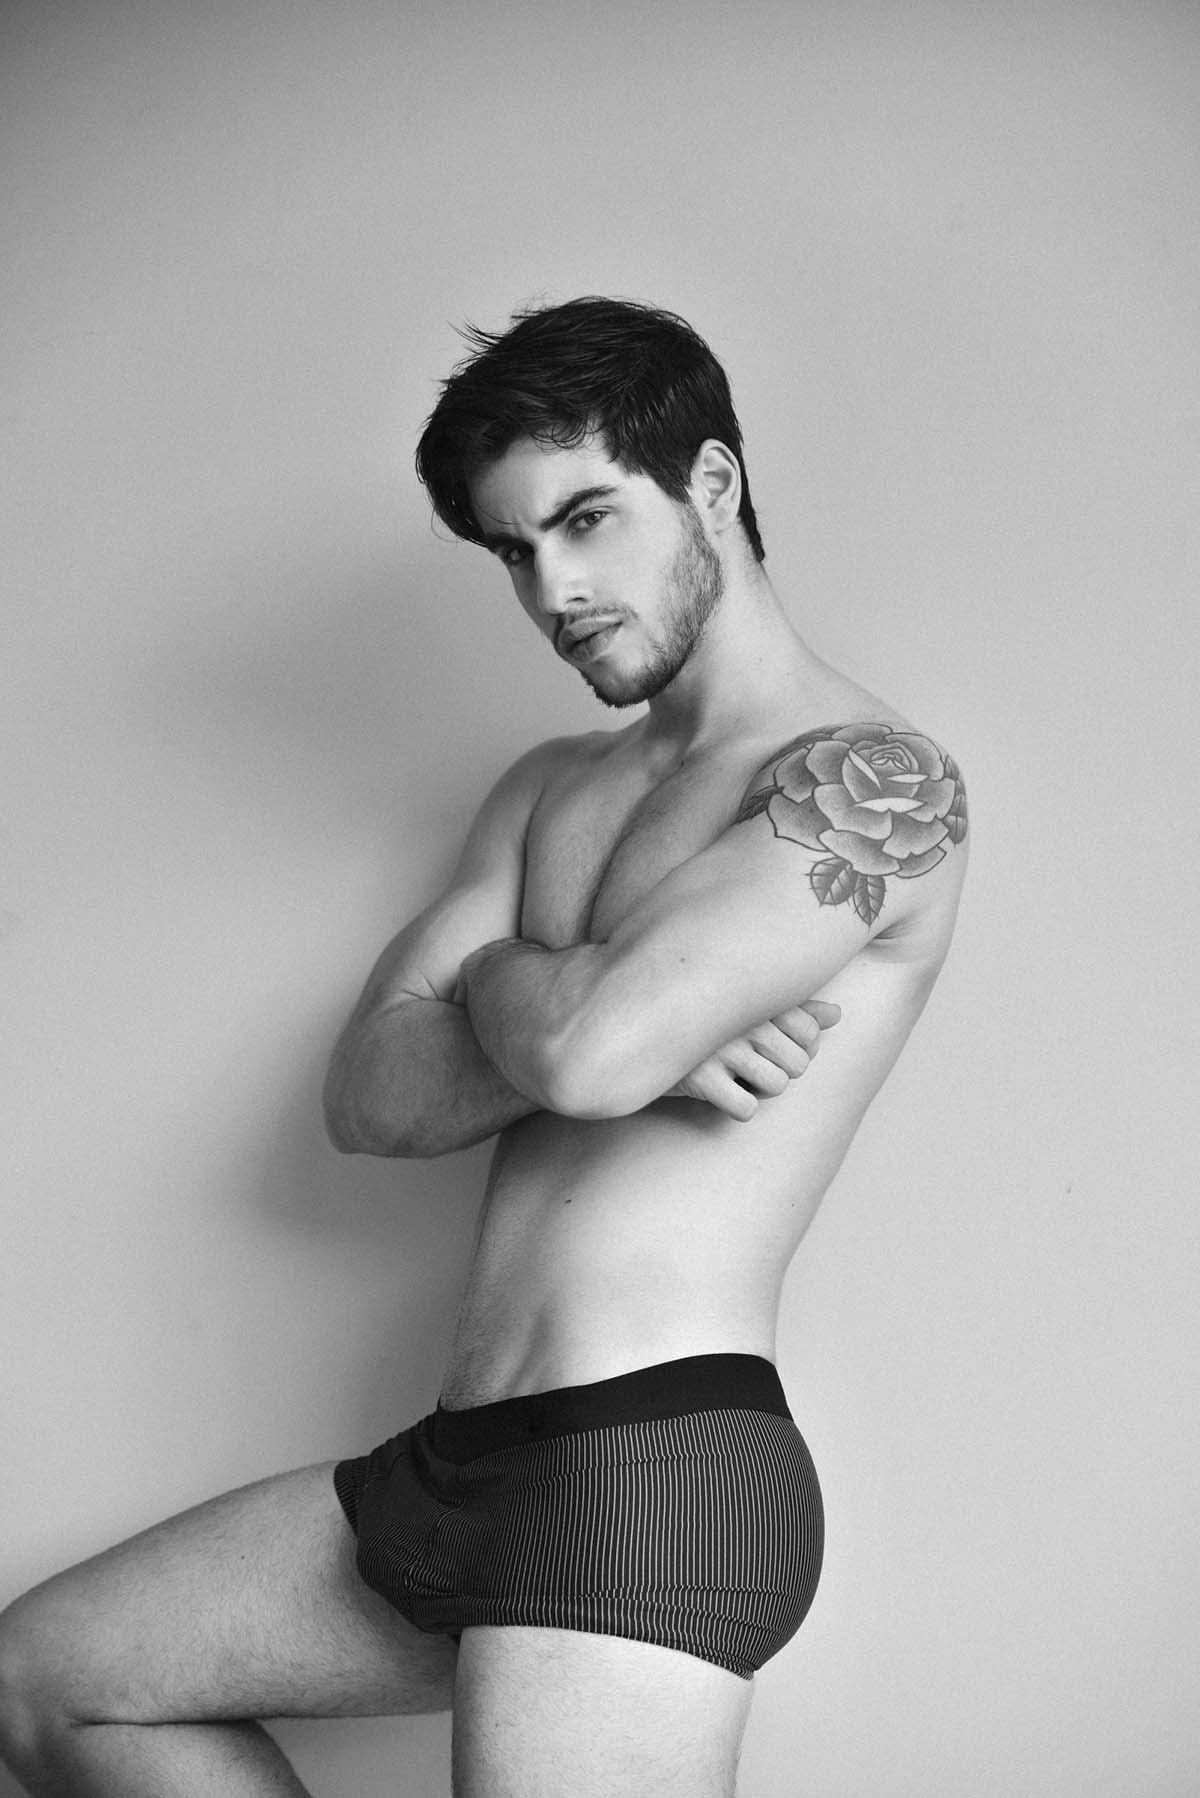 Cesar Lobo by Vitor Lisboa for Brazilian Male Model